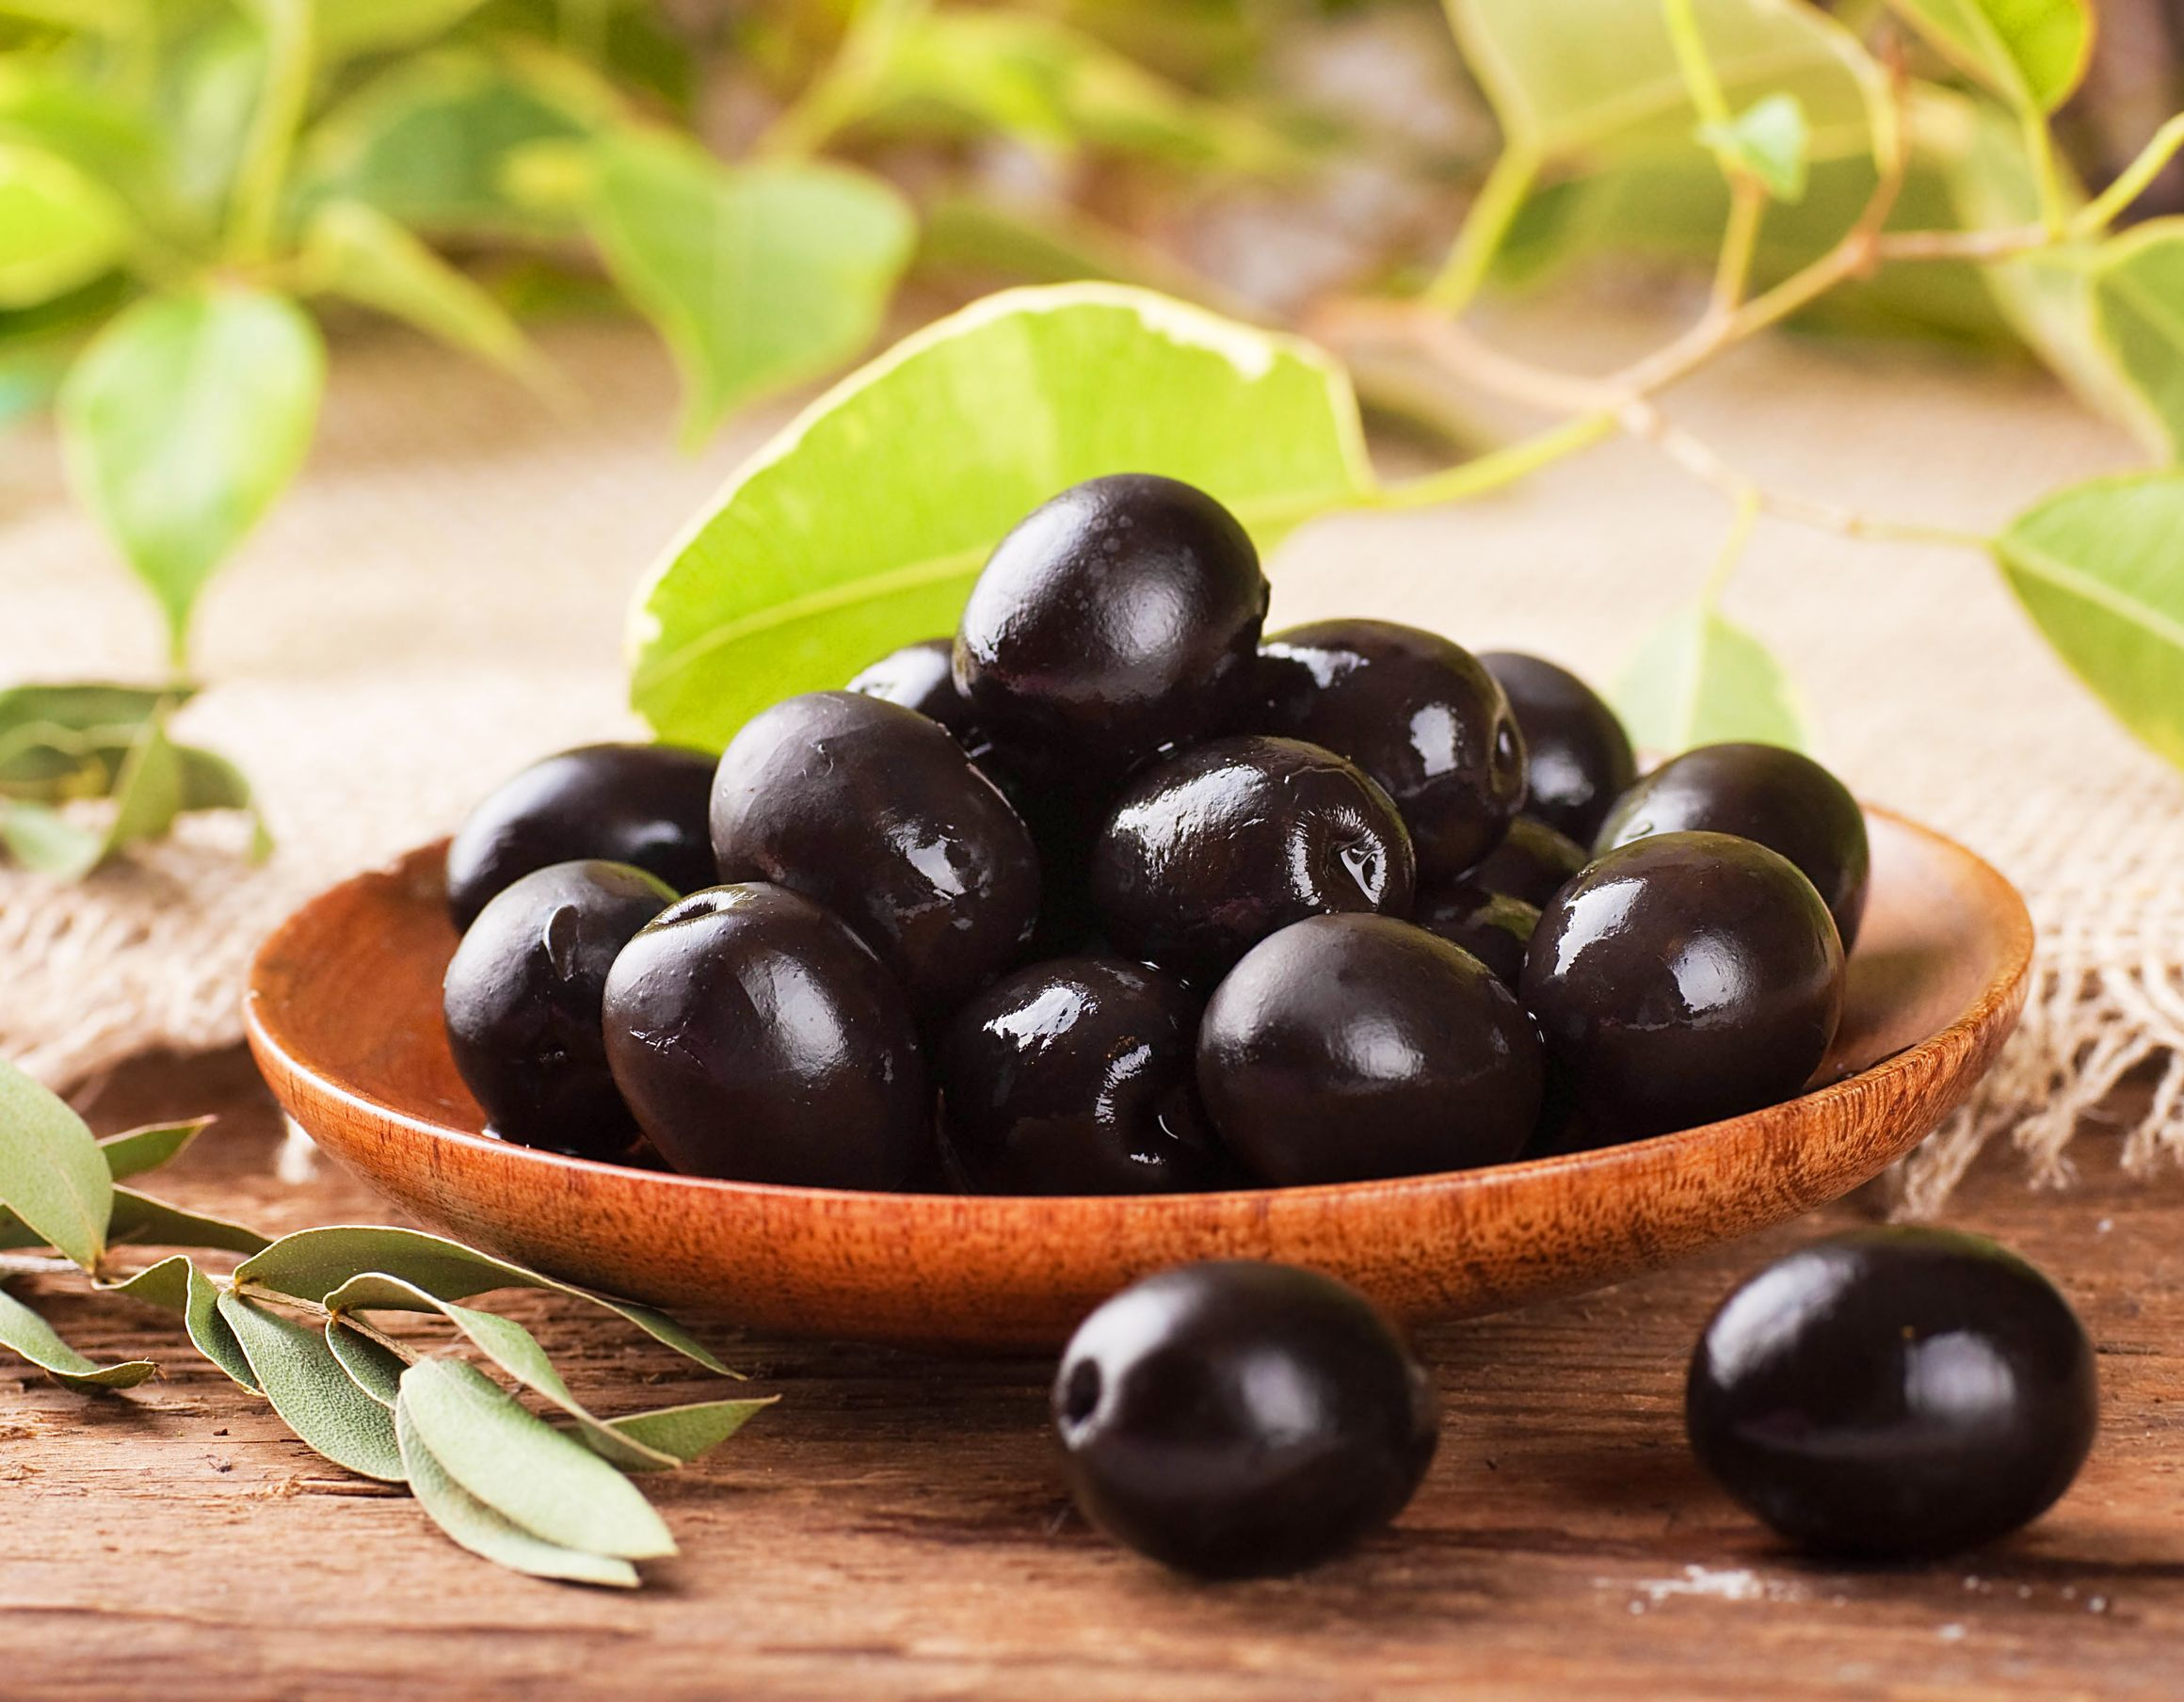 6 Awesome Health Benefits Of Olives That Prove Exactly Why